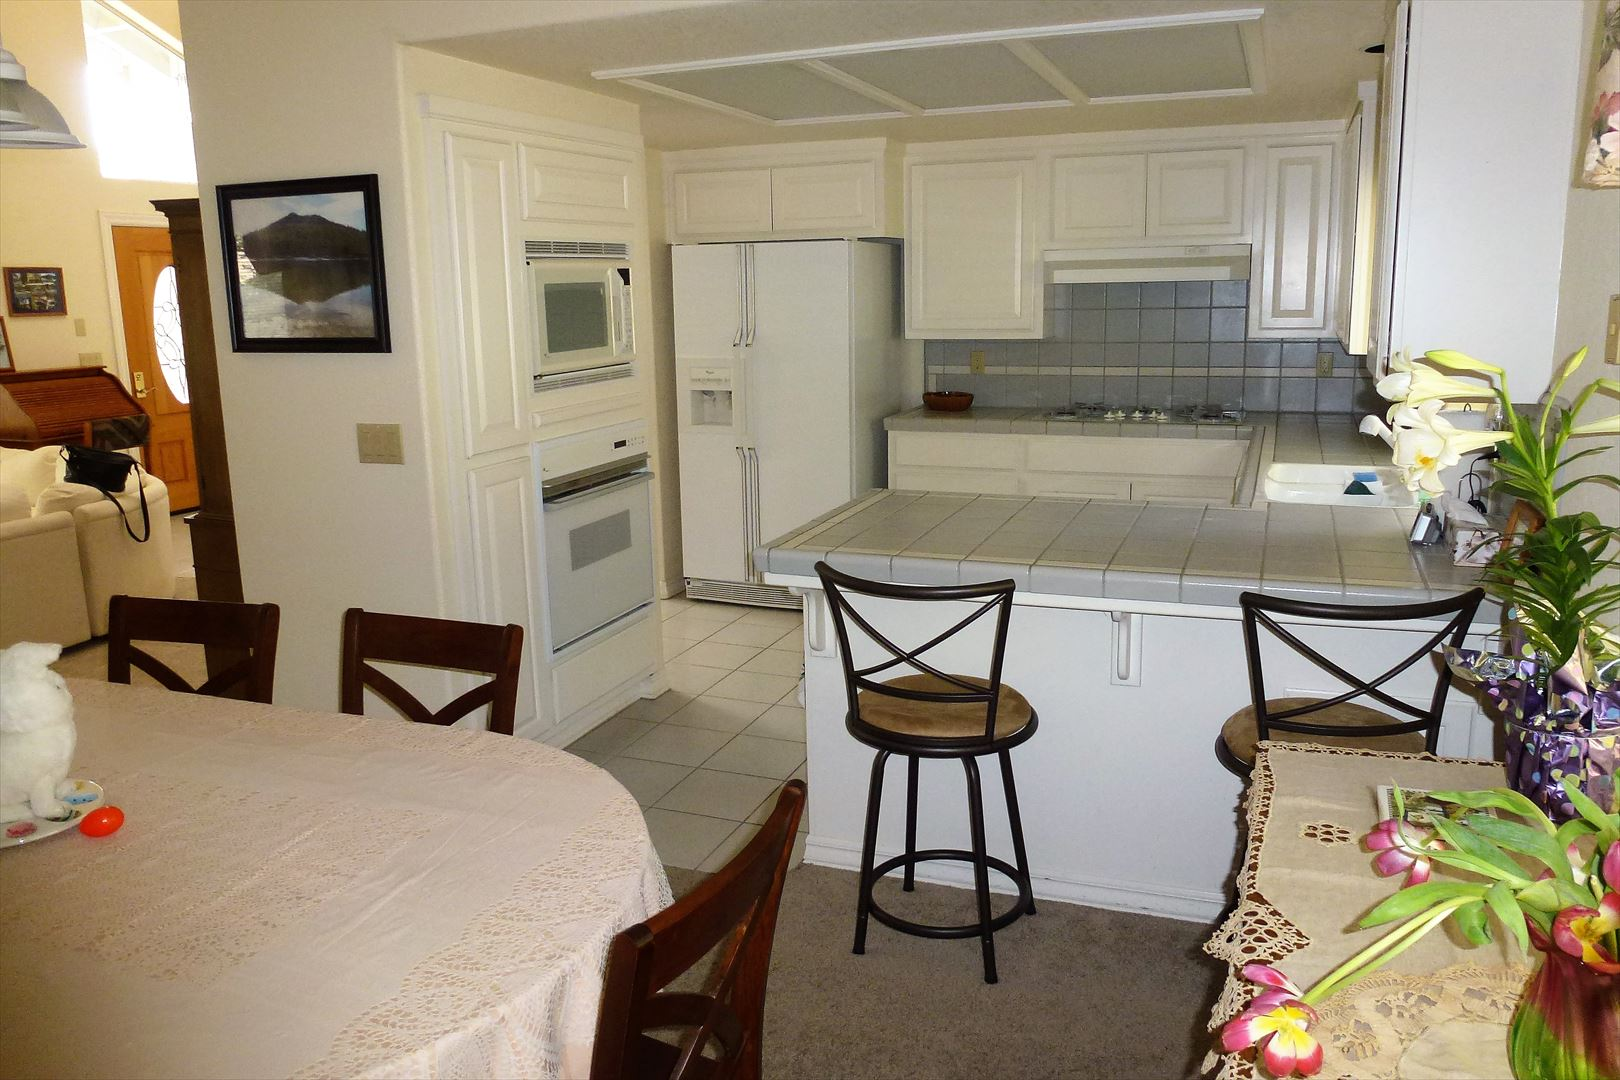 Kitchen is ideally located for all to gather and includes lots of working counter space.